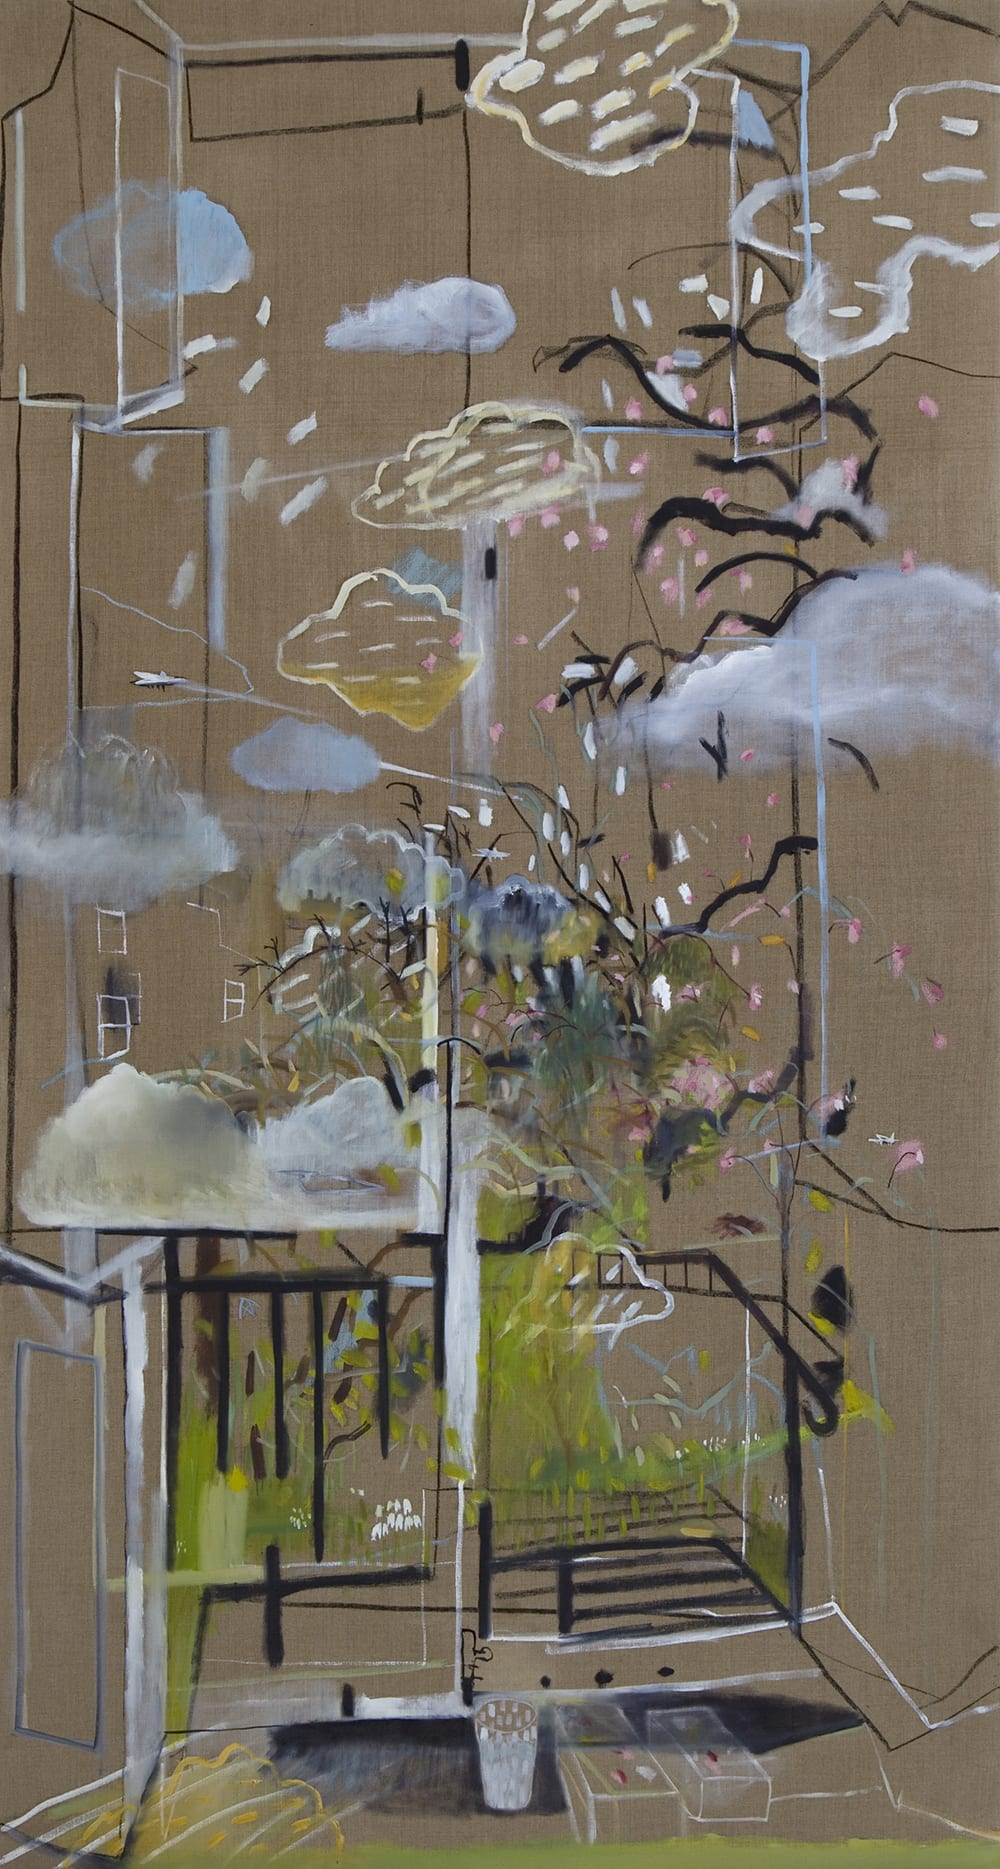 Katie Sollohub, Dreaming with Open Eyes, 2015